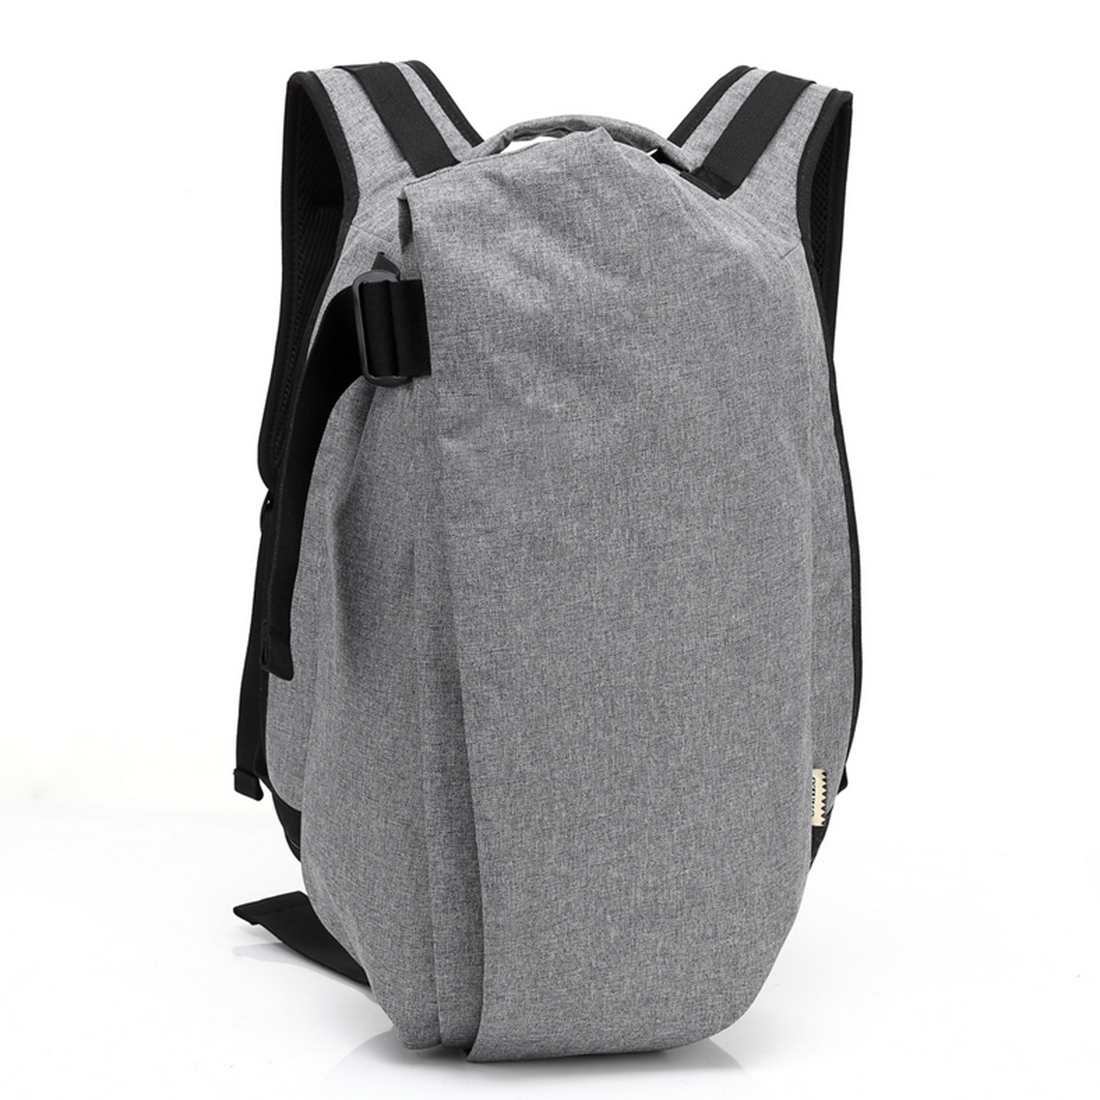 ARESLAND Male Backpack School Men Big Capacity Oxford Creative Leisure Travel Backpacks School Bag With USB Charging Port Black<br>